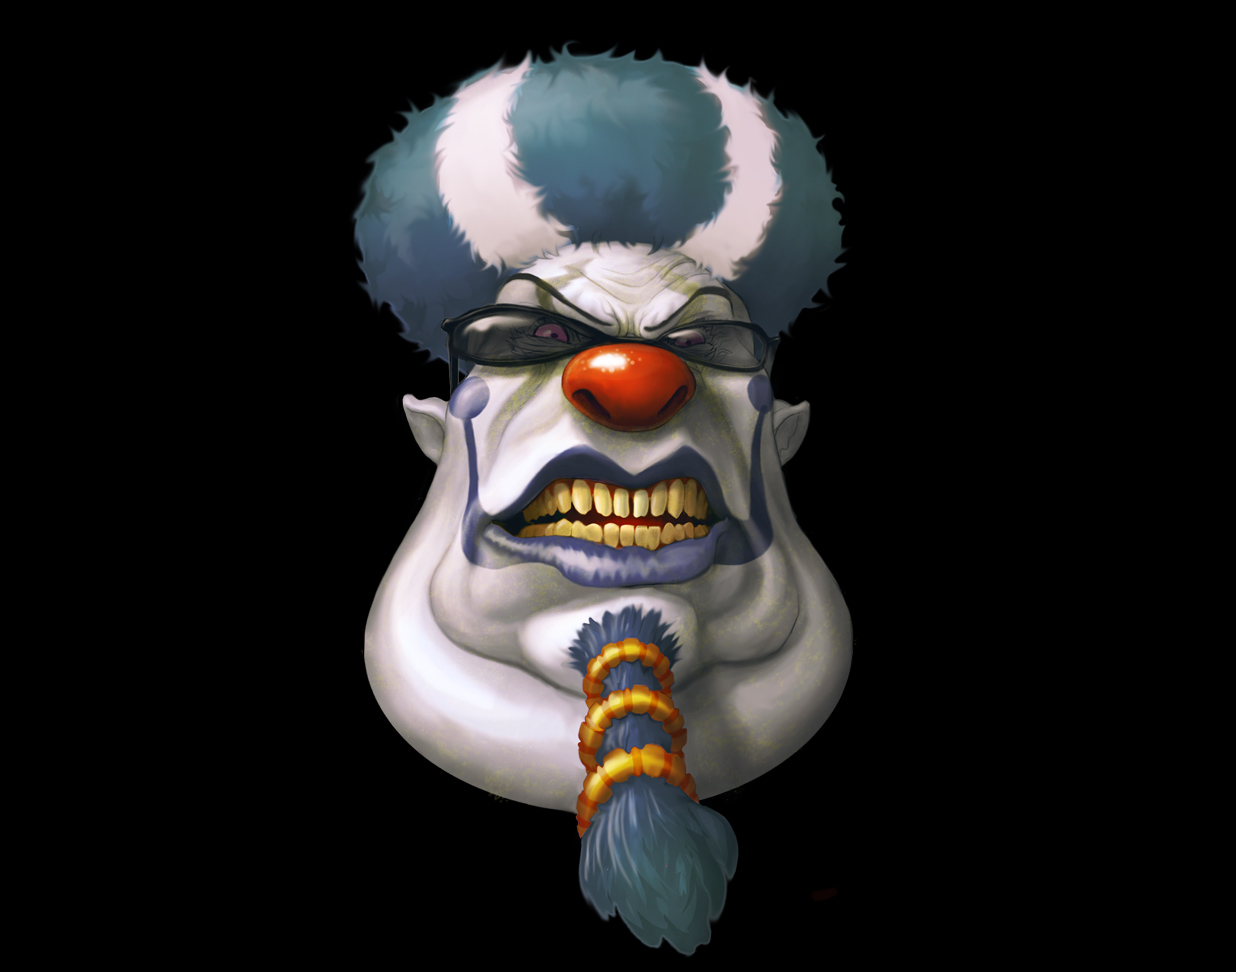 evil clown wallpaper submited images